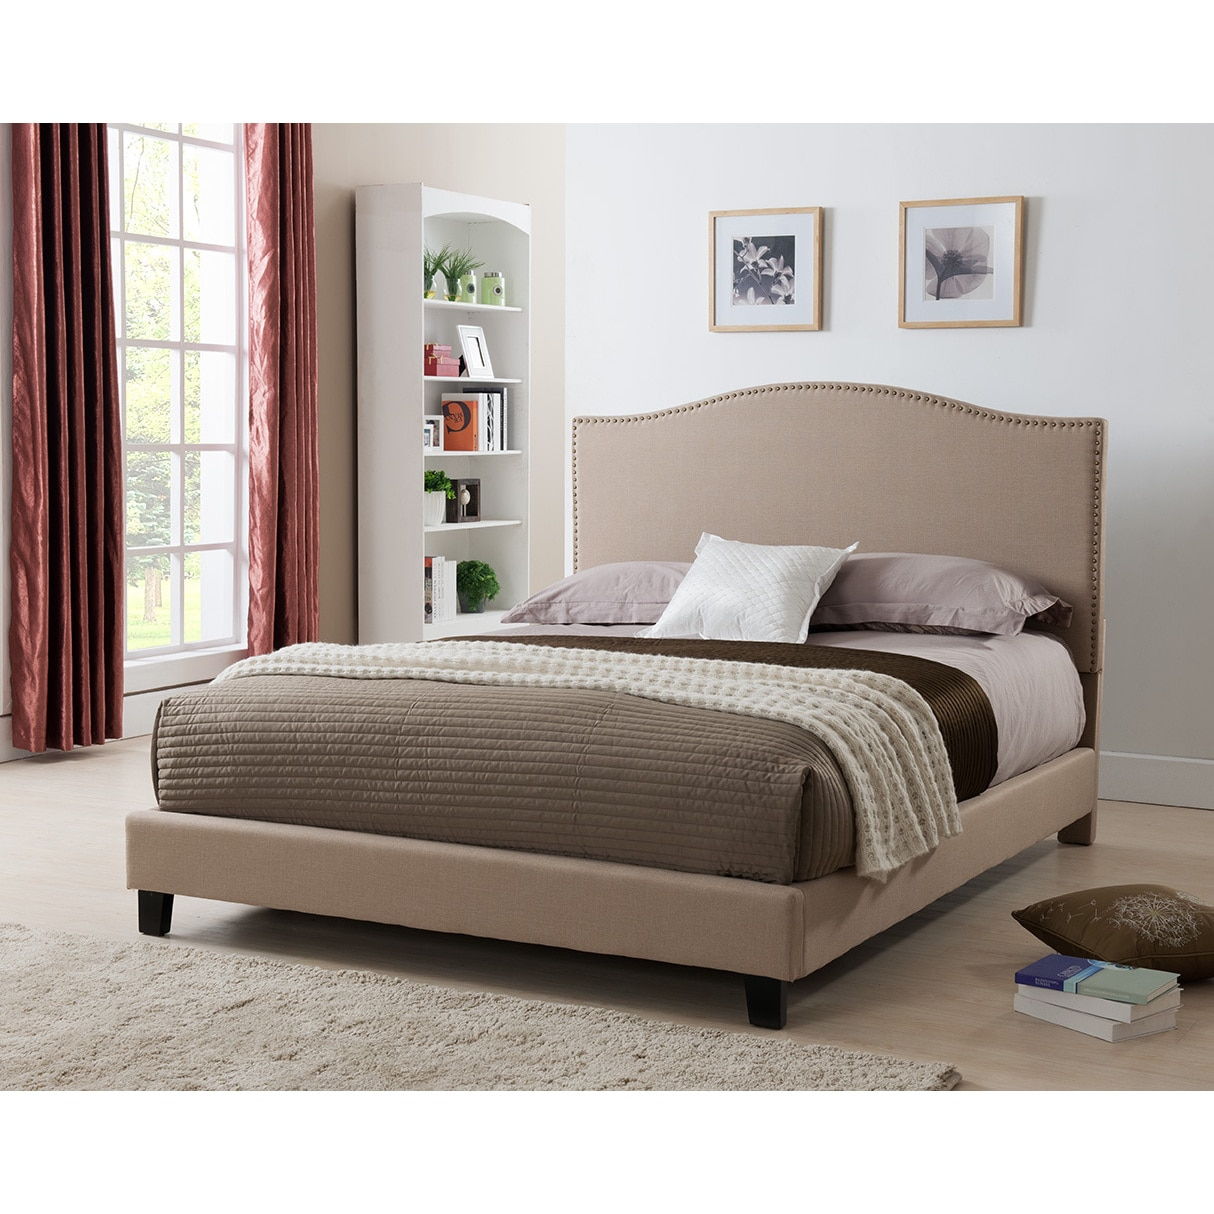 United Furniture Express Laurence Platform Bed with Nail-head Headboard